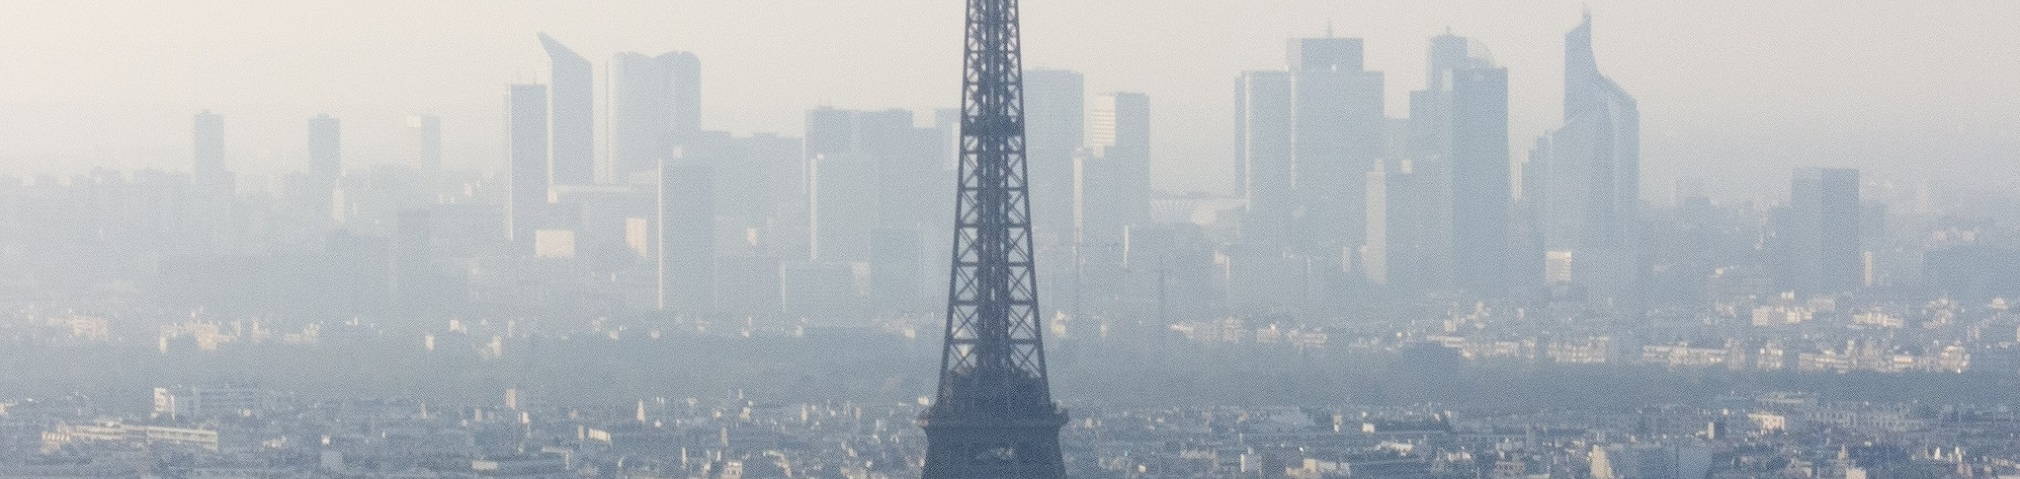 Pollution air en ville